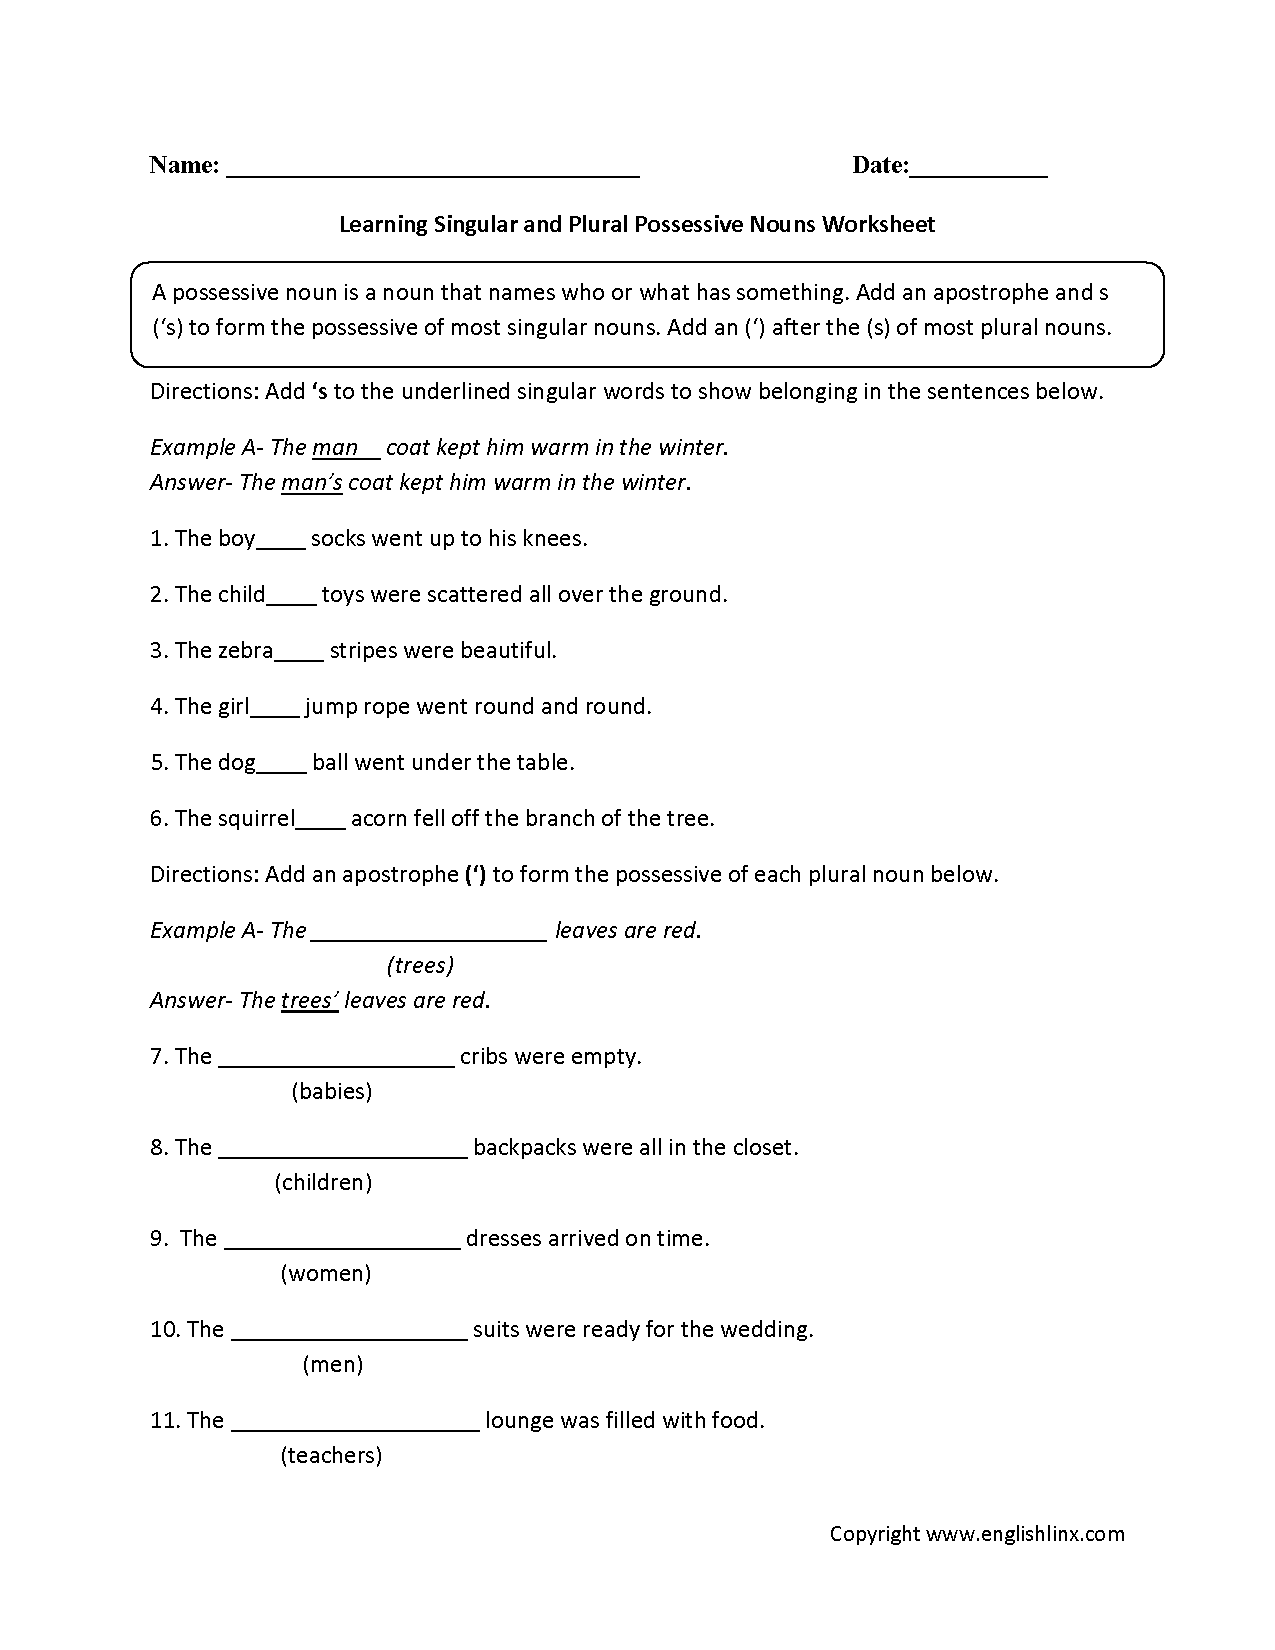 Worksheet Singular And Plural Quiz nouns worksheets possessive learning singular and plural worksheet